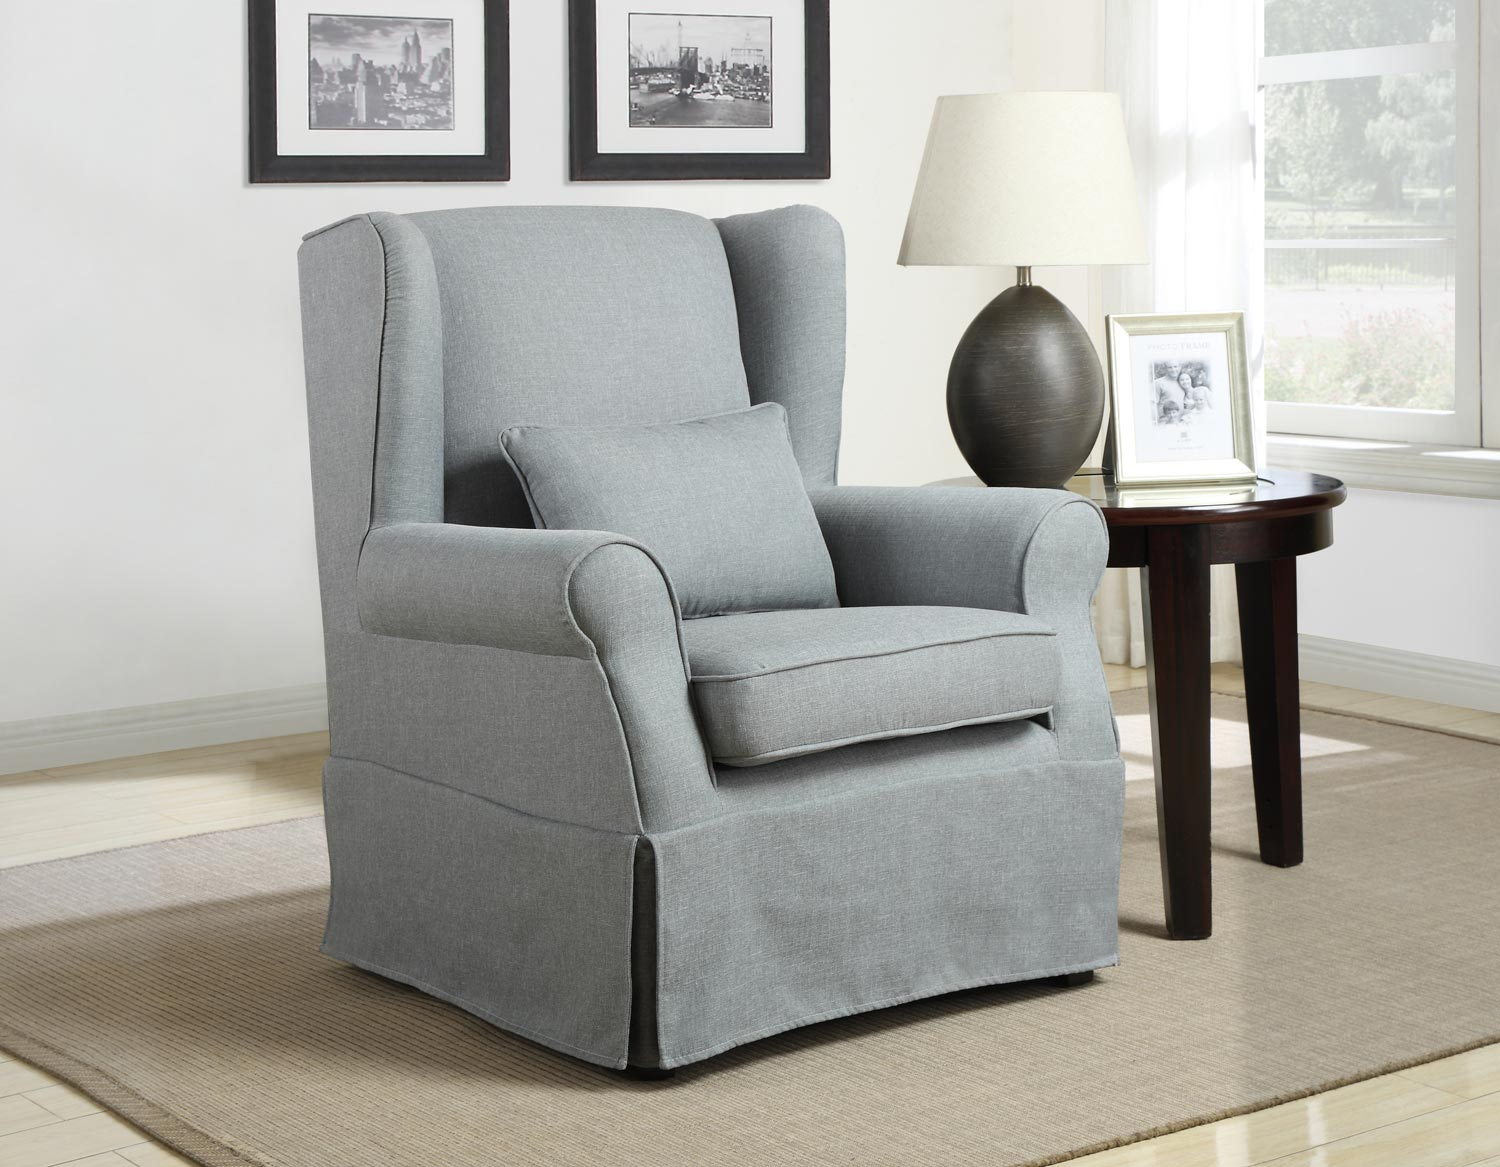 Homelegance Alden Accent Chair with 1 Kidney Pillow - Grey